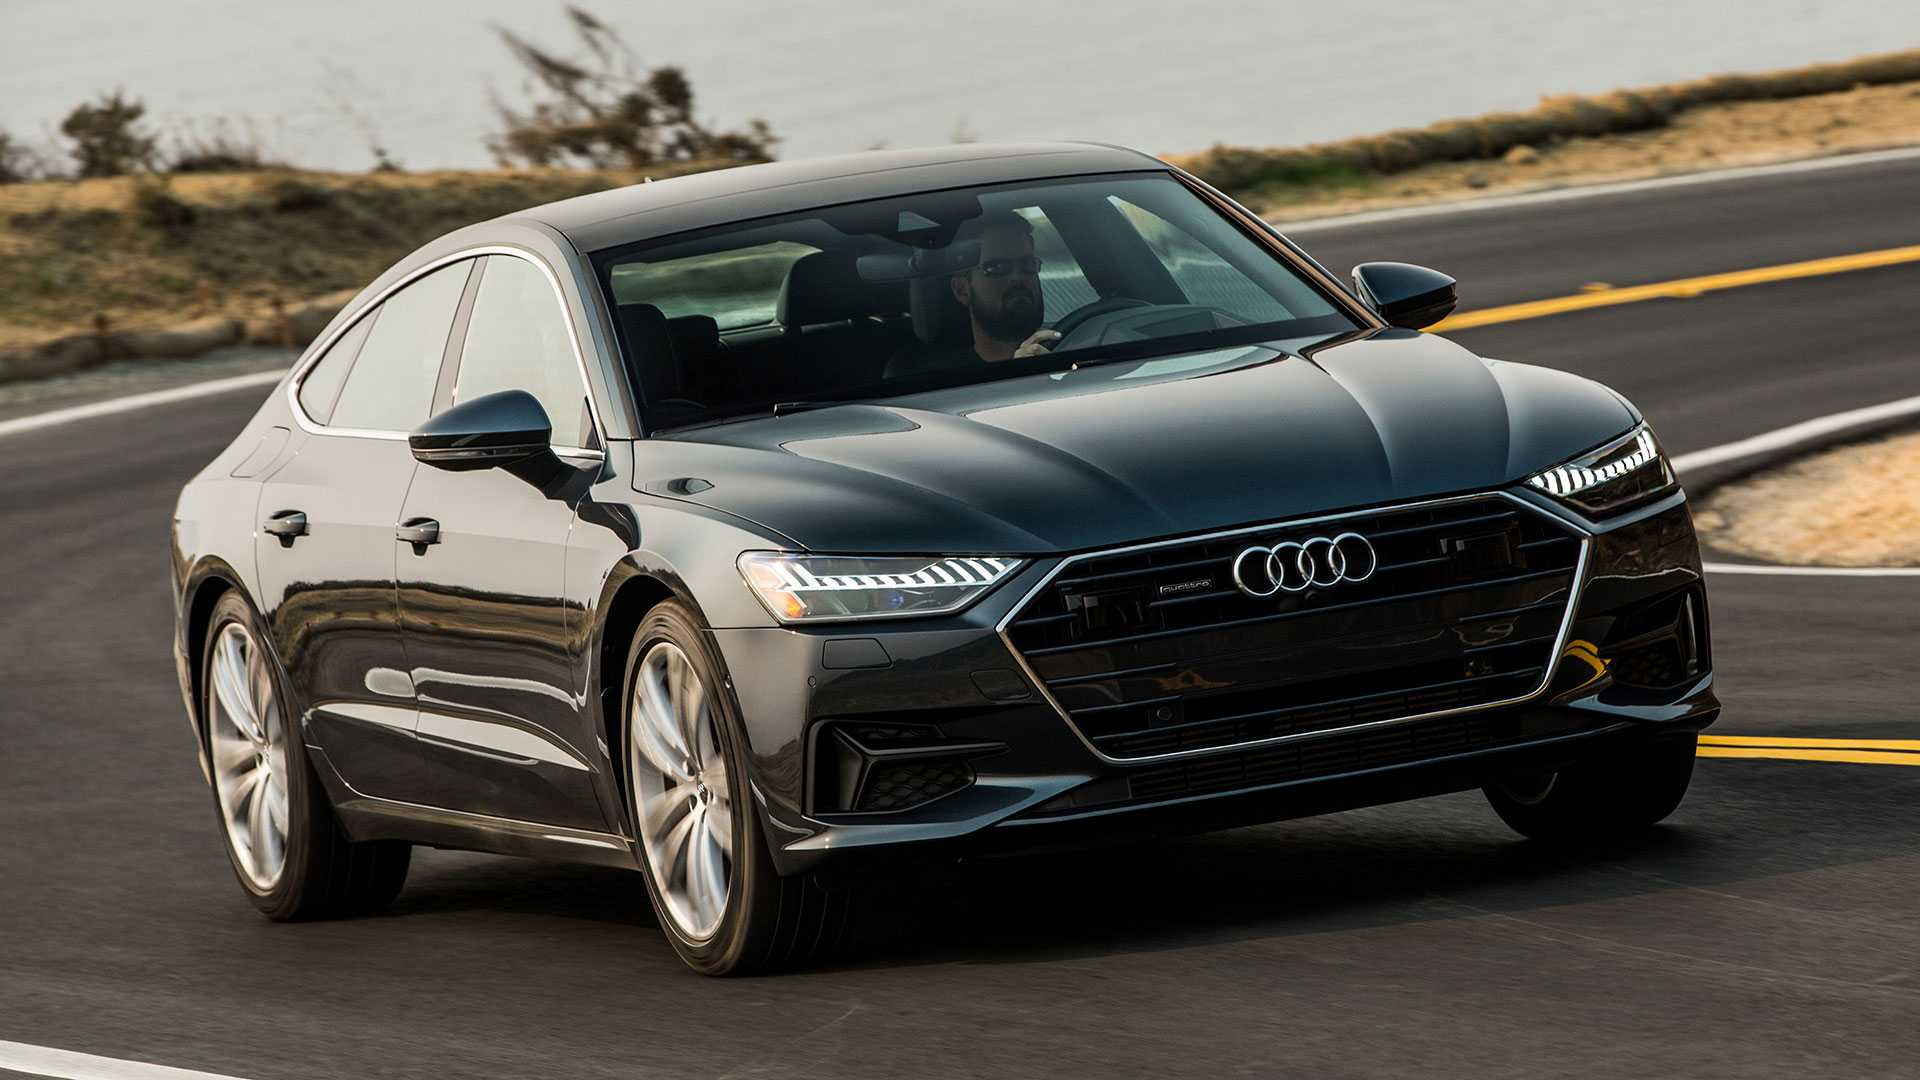 65 New 2019 Audi A7 Research New